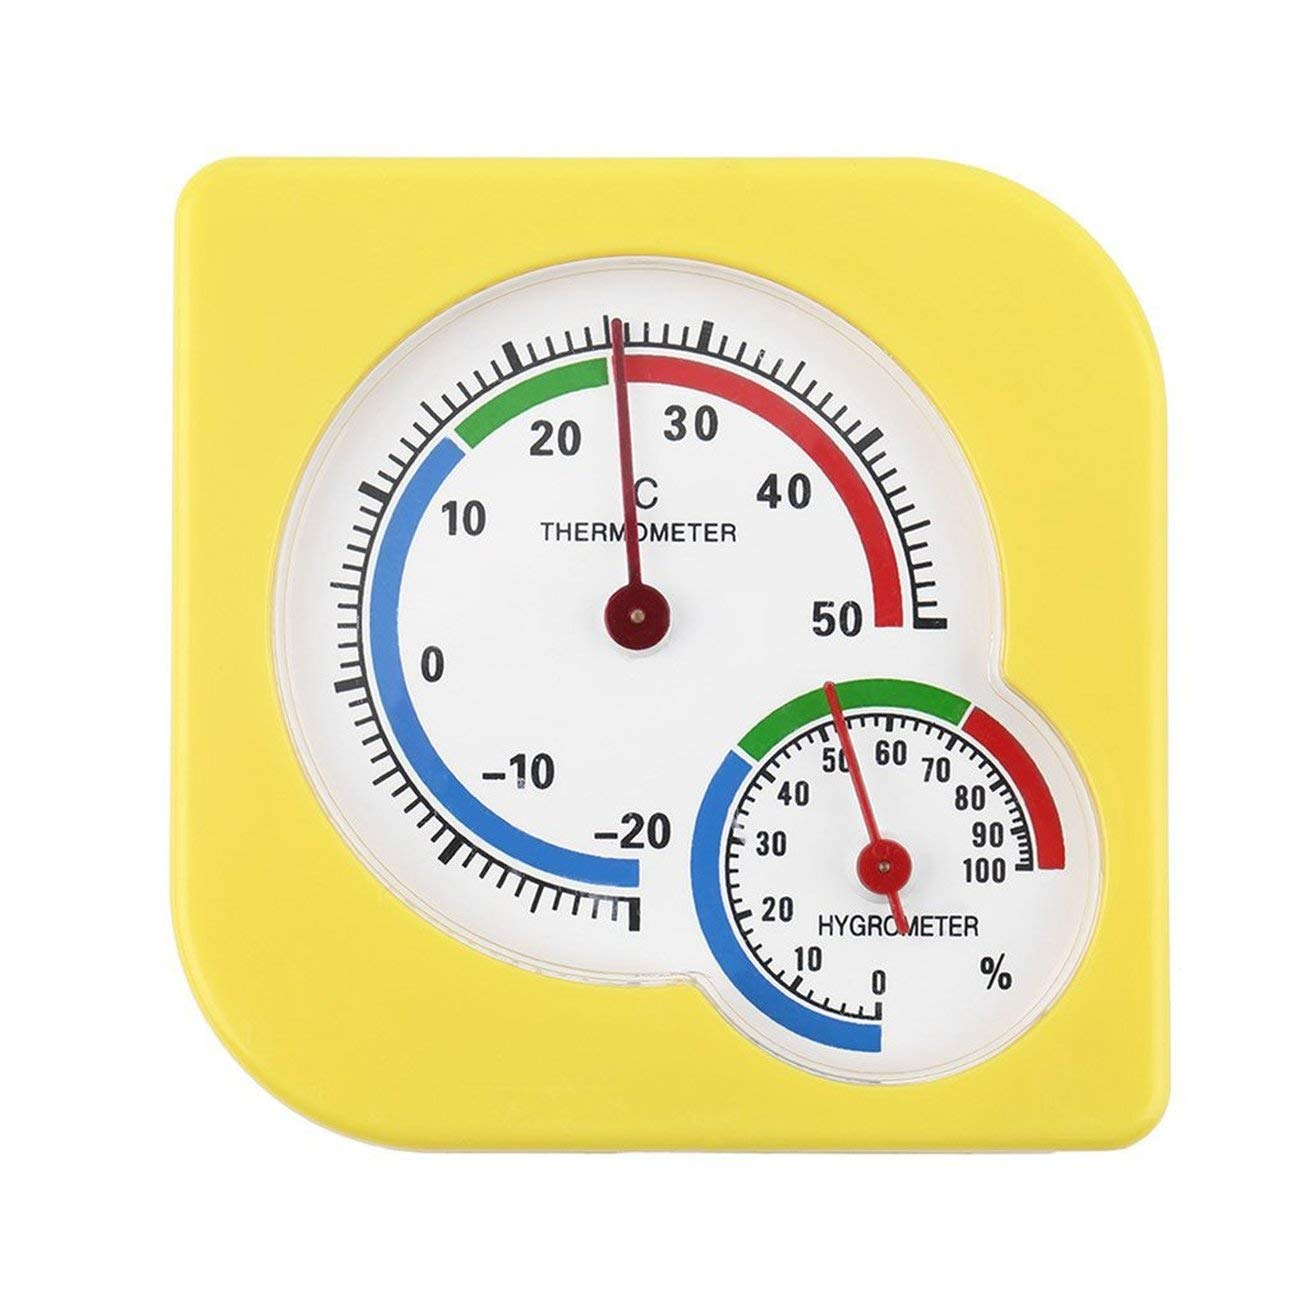 Liobaba Hygrometer Humidity Gauge Indicator Digital Indoor Thermometer Room Temperature and Humidity Monitor by Liobaba (Image #1)